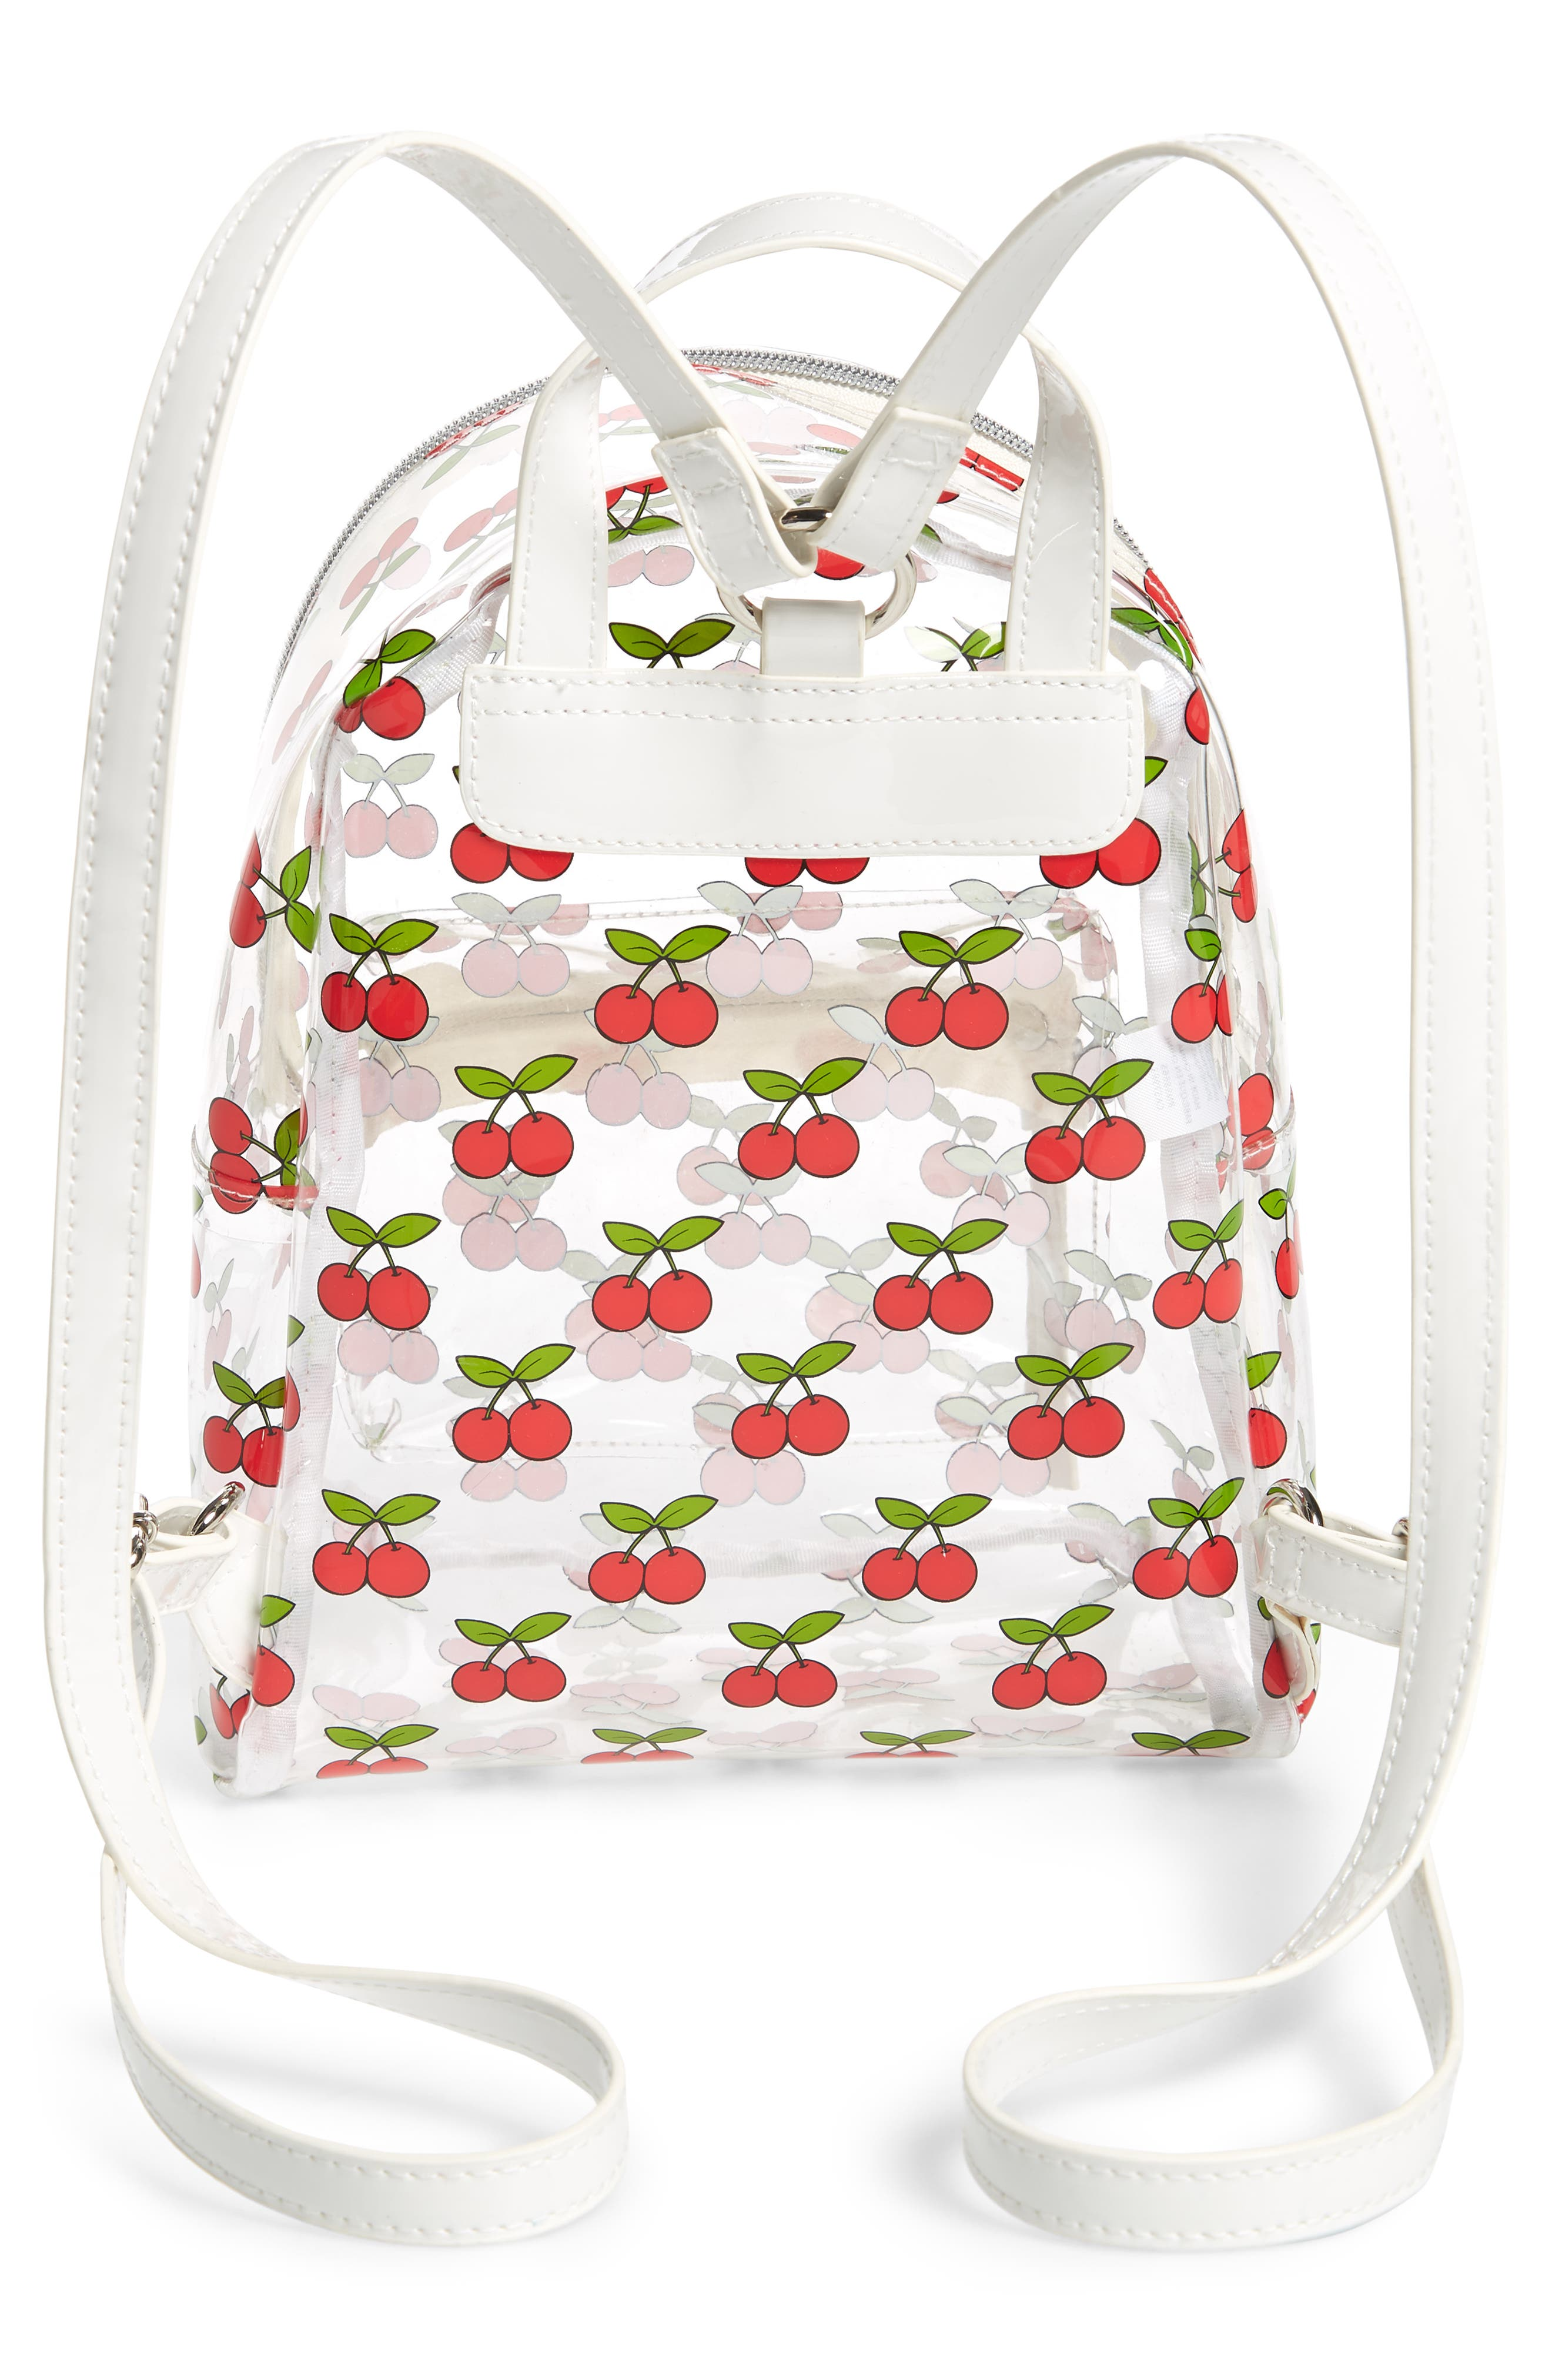 Transparent Cherry Print Mini Convertible Backpack,                             Alternate thumbnail 3, color,                             Clear/ Red